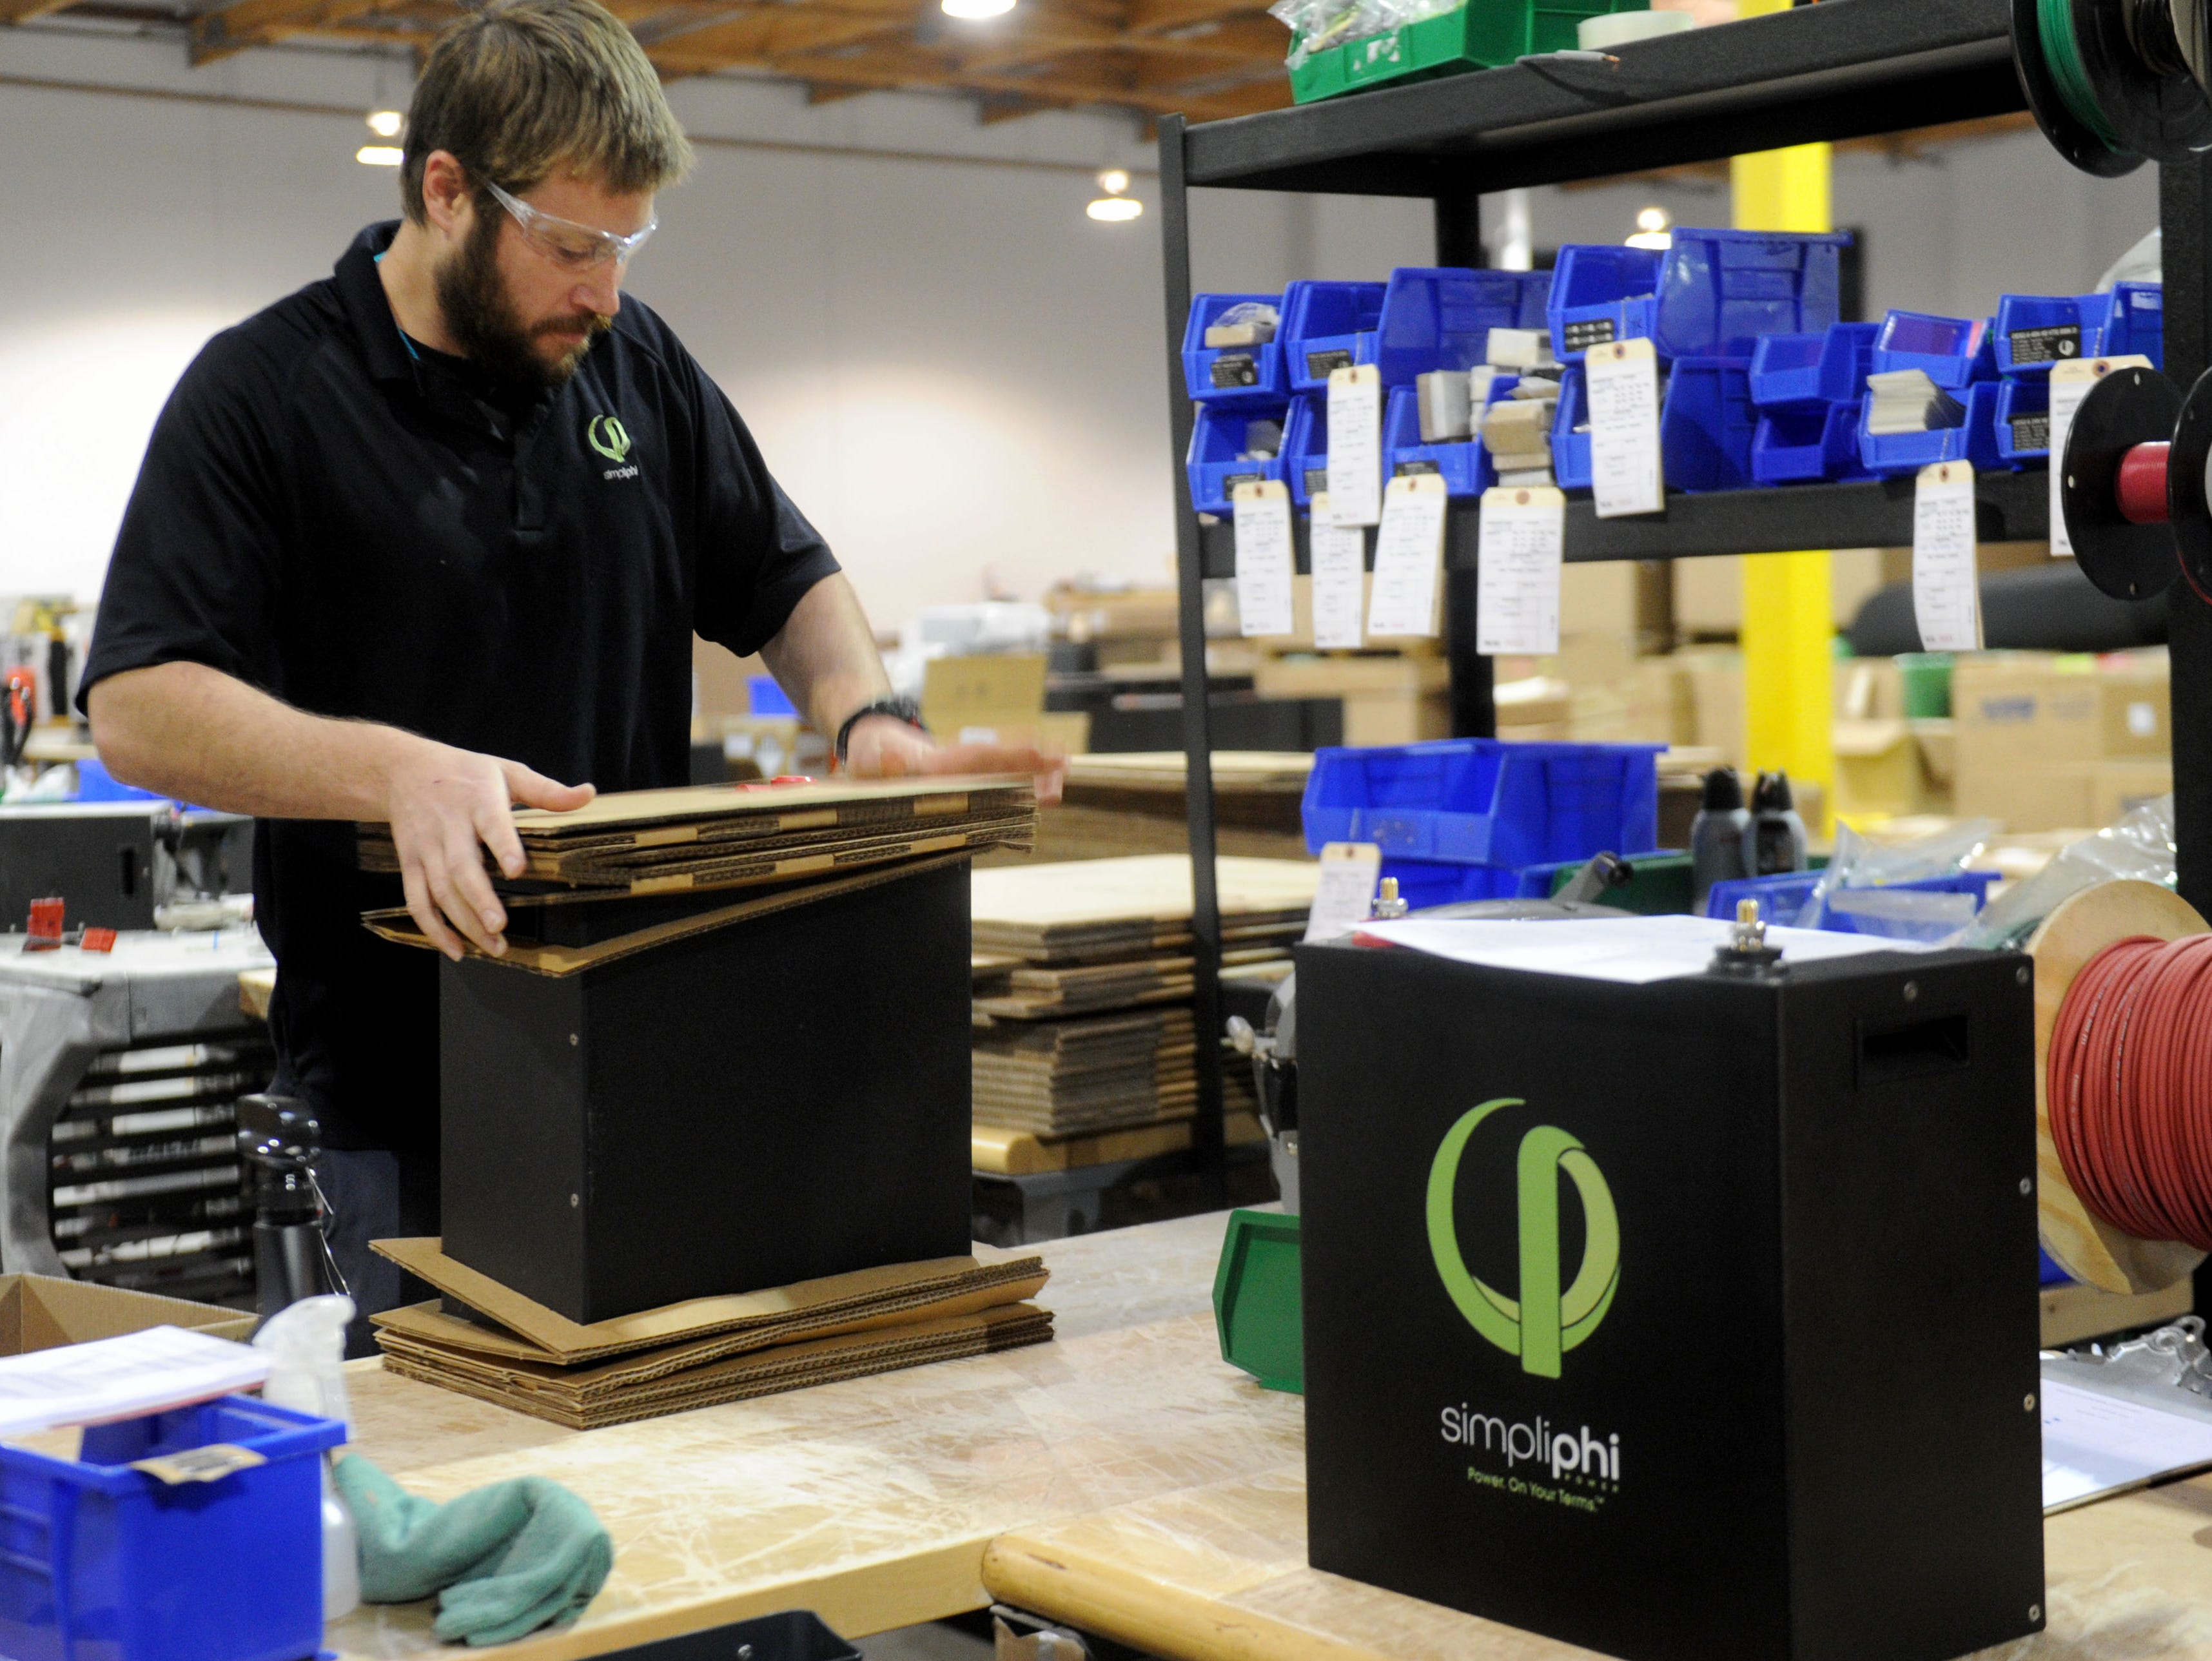 Austin Childs, a shipping and receiving specialist for SimpliPhi Power, works on boxing a battery in the company's new manufacturing facility in Oxnard. The new facility is triple the size of its previous Ojai headquarters. The company aims to expand its international operations and the Oxnard facility is crucial to that.